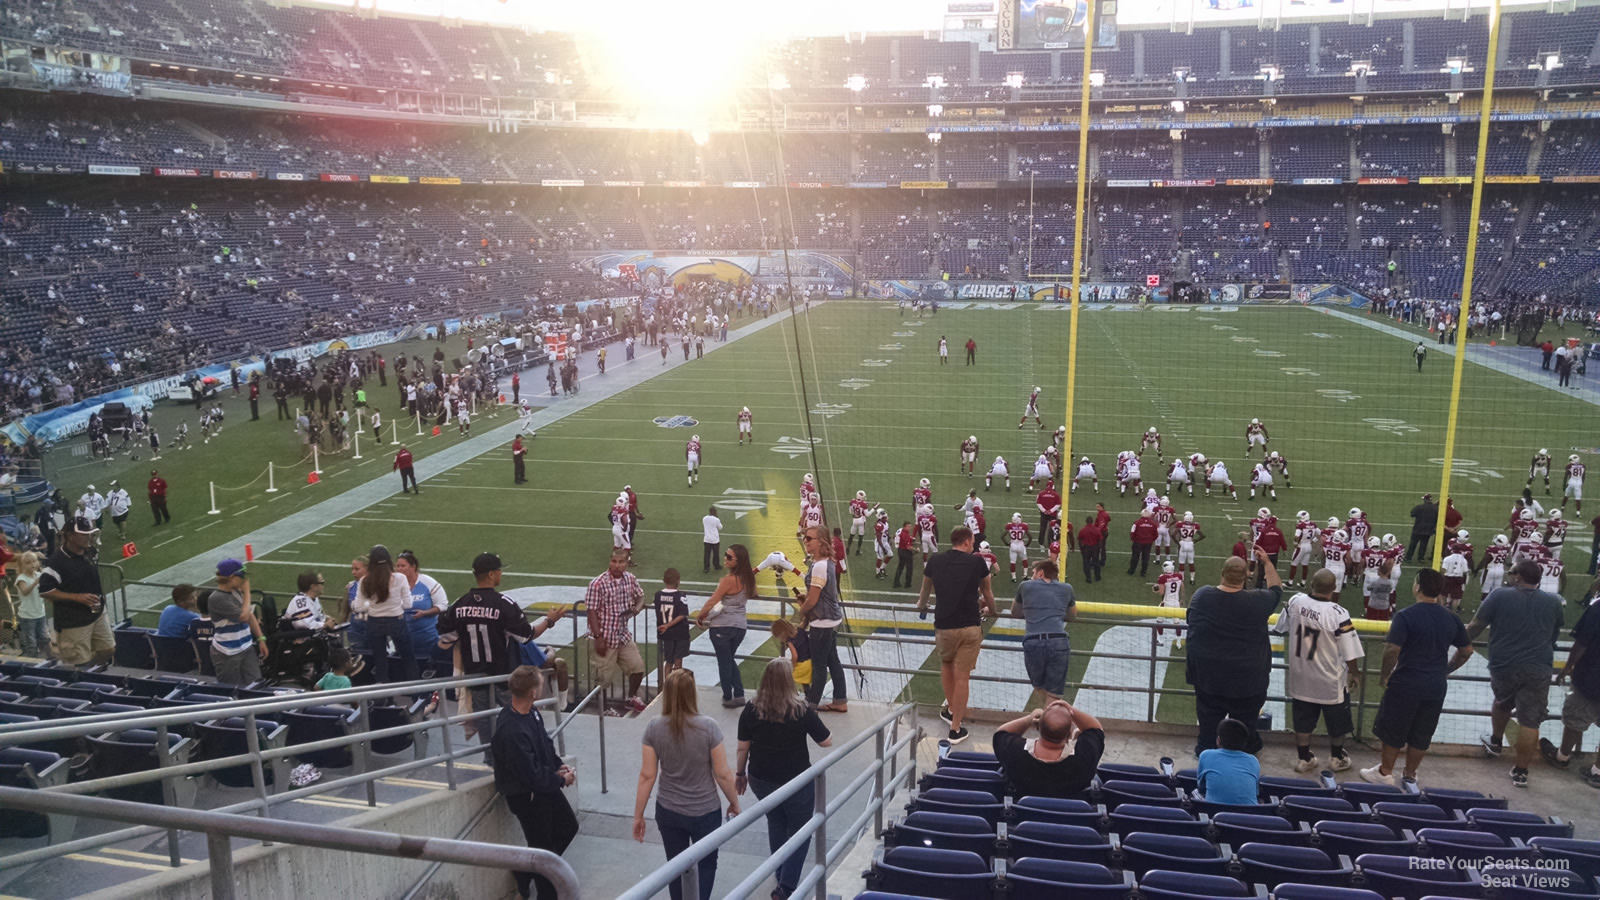 Qualcomm stadium seating pictures Pictures of hotels in or near Carlsbad Take a photo tour